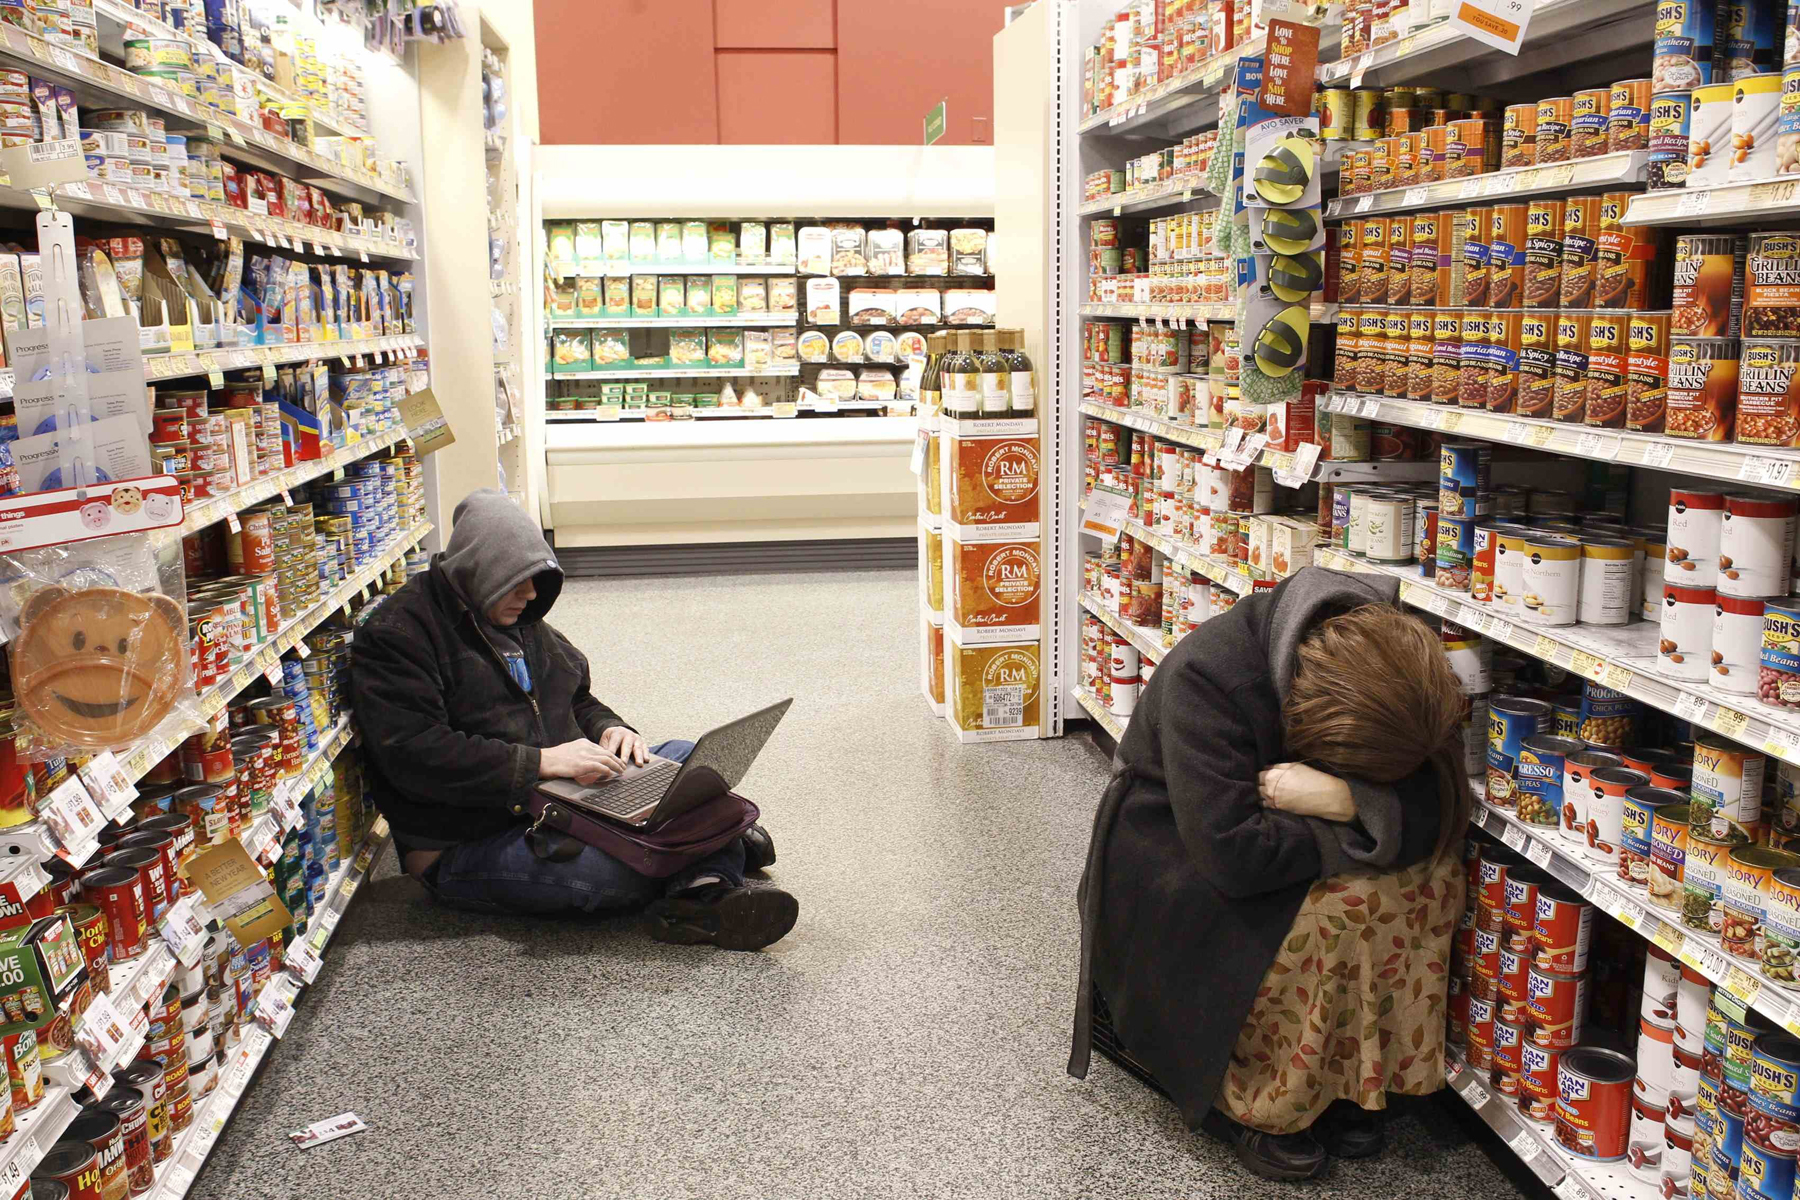 People rest at aisle of a Publix grocery store after being stranded due to a snow storm in Atlanta